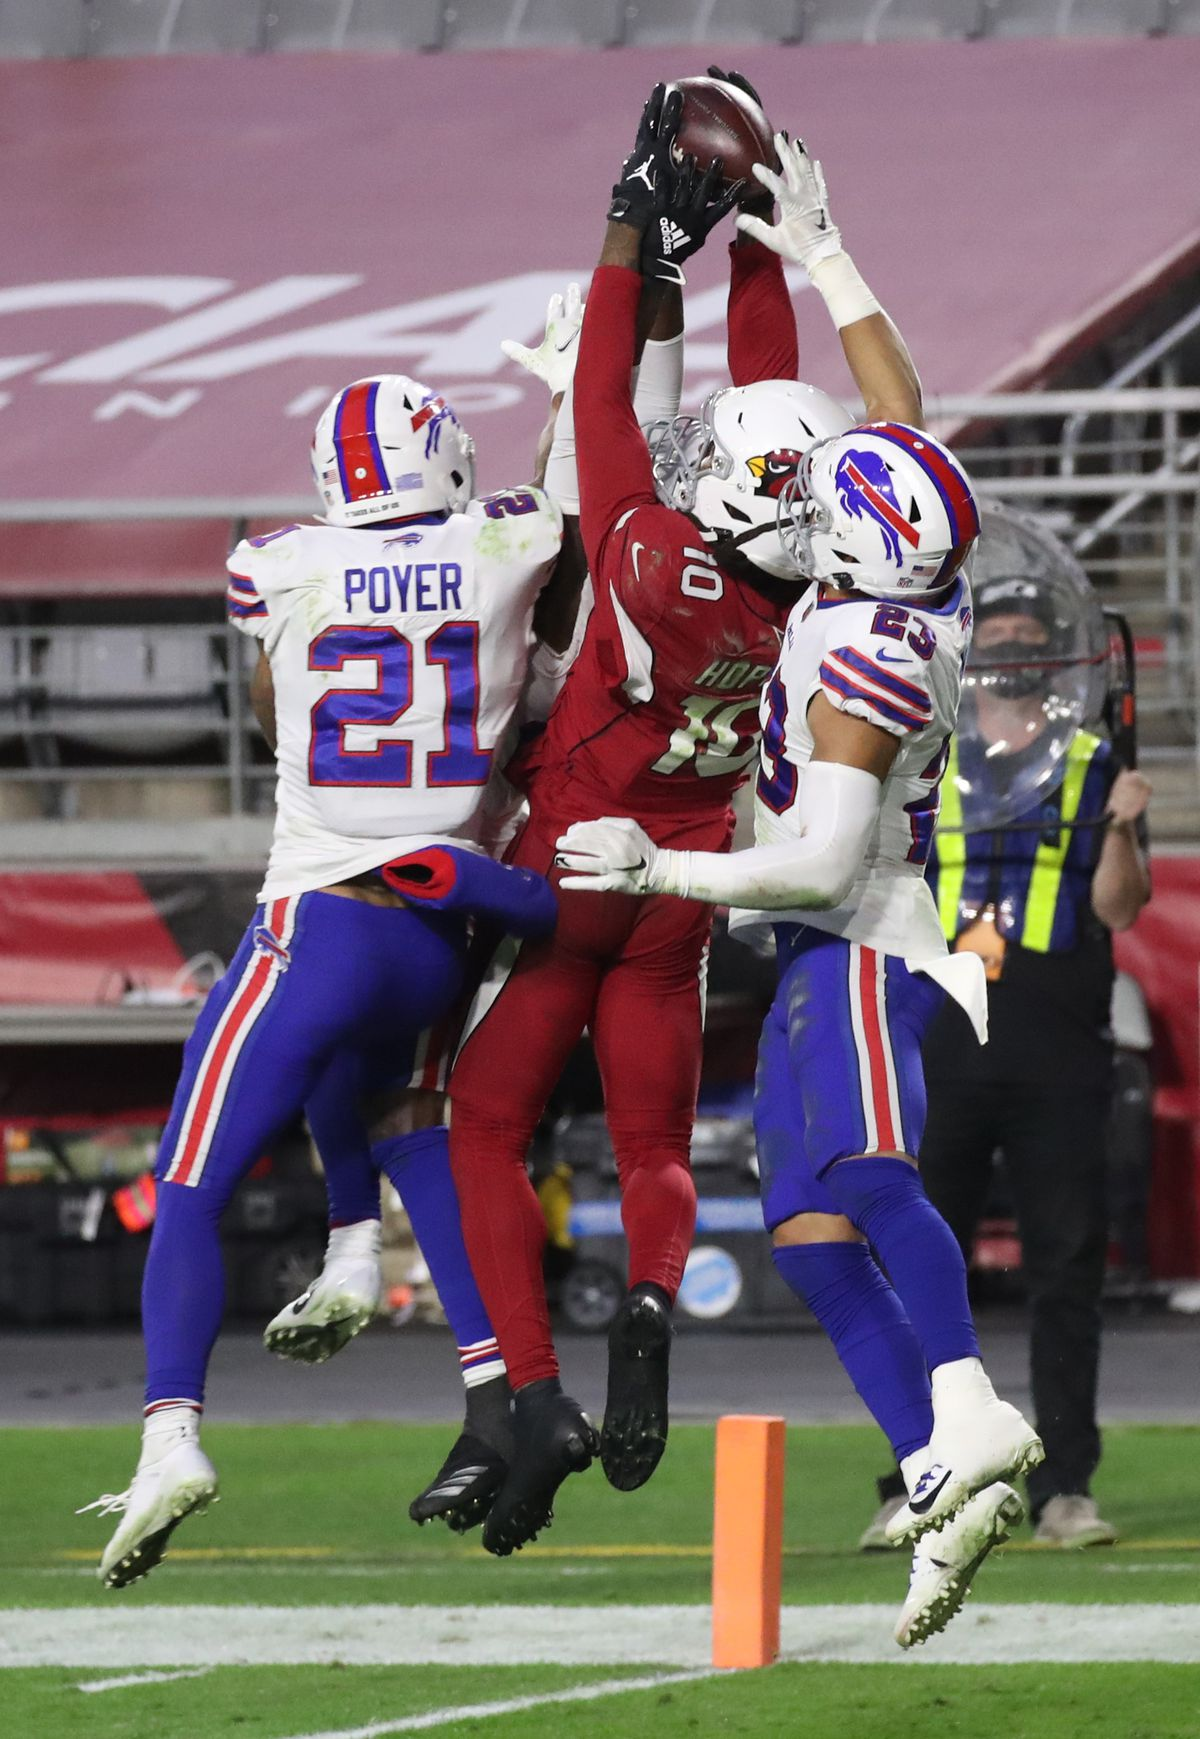 DeAndre Hopkins hauls down the ball while surrounded by Bills